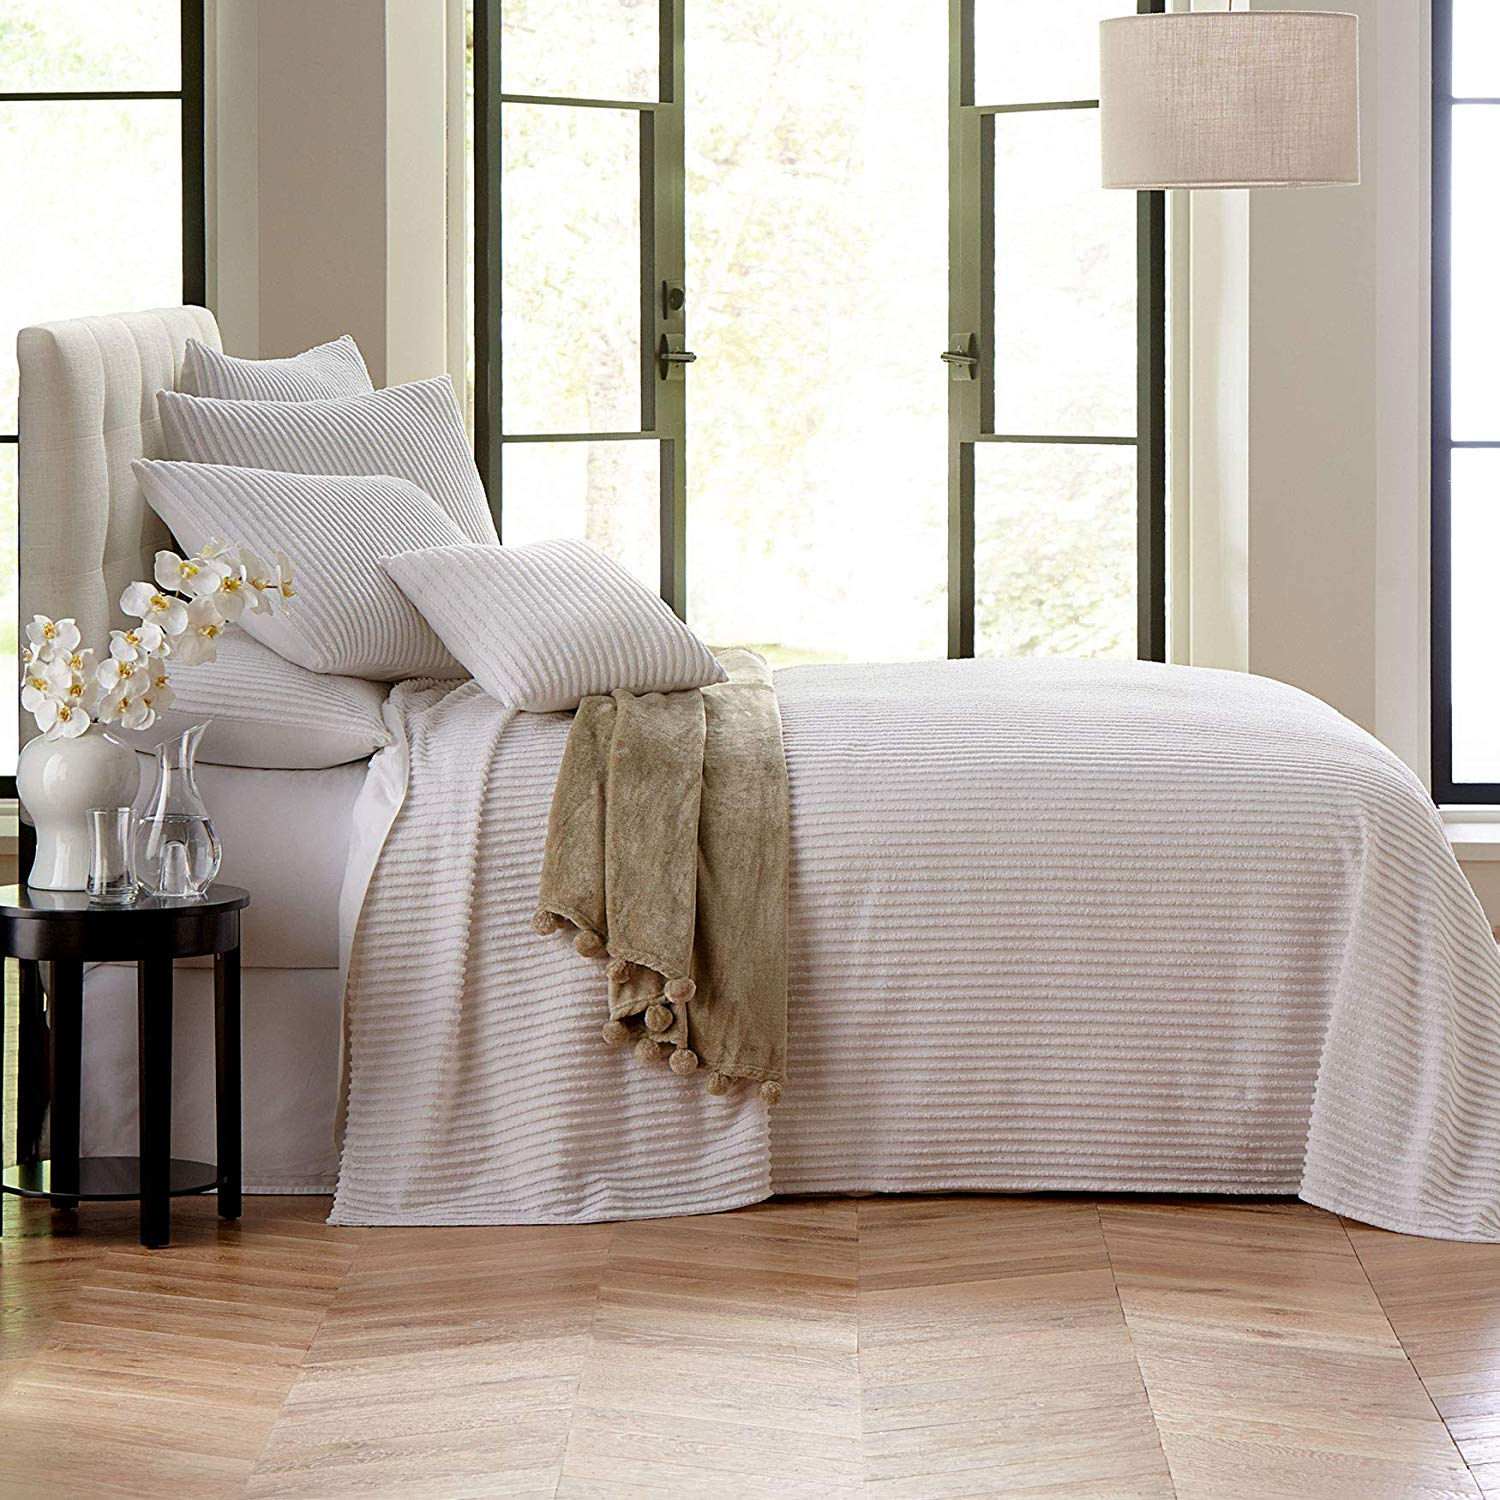 The modern clean lines of this  chenille blanket  would be beautiful in a modern farmhouse bedroom.